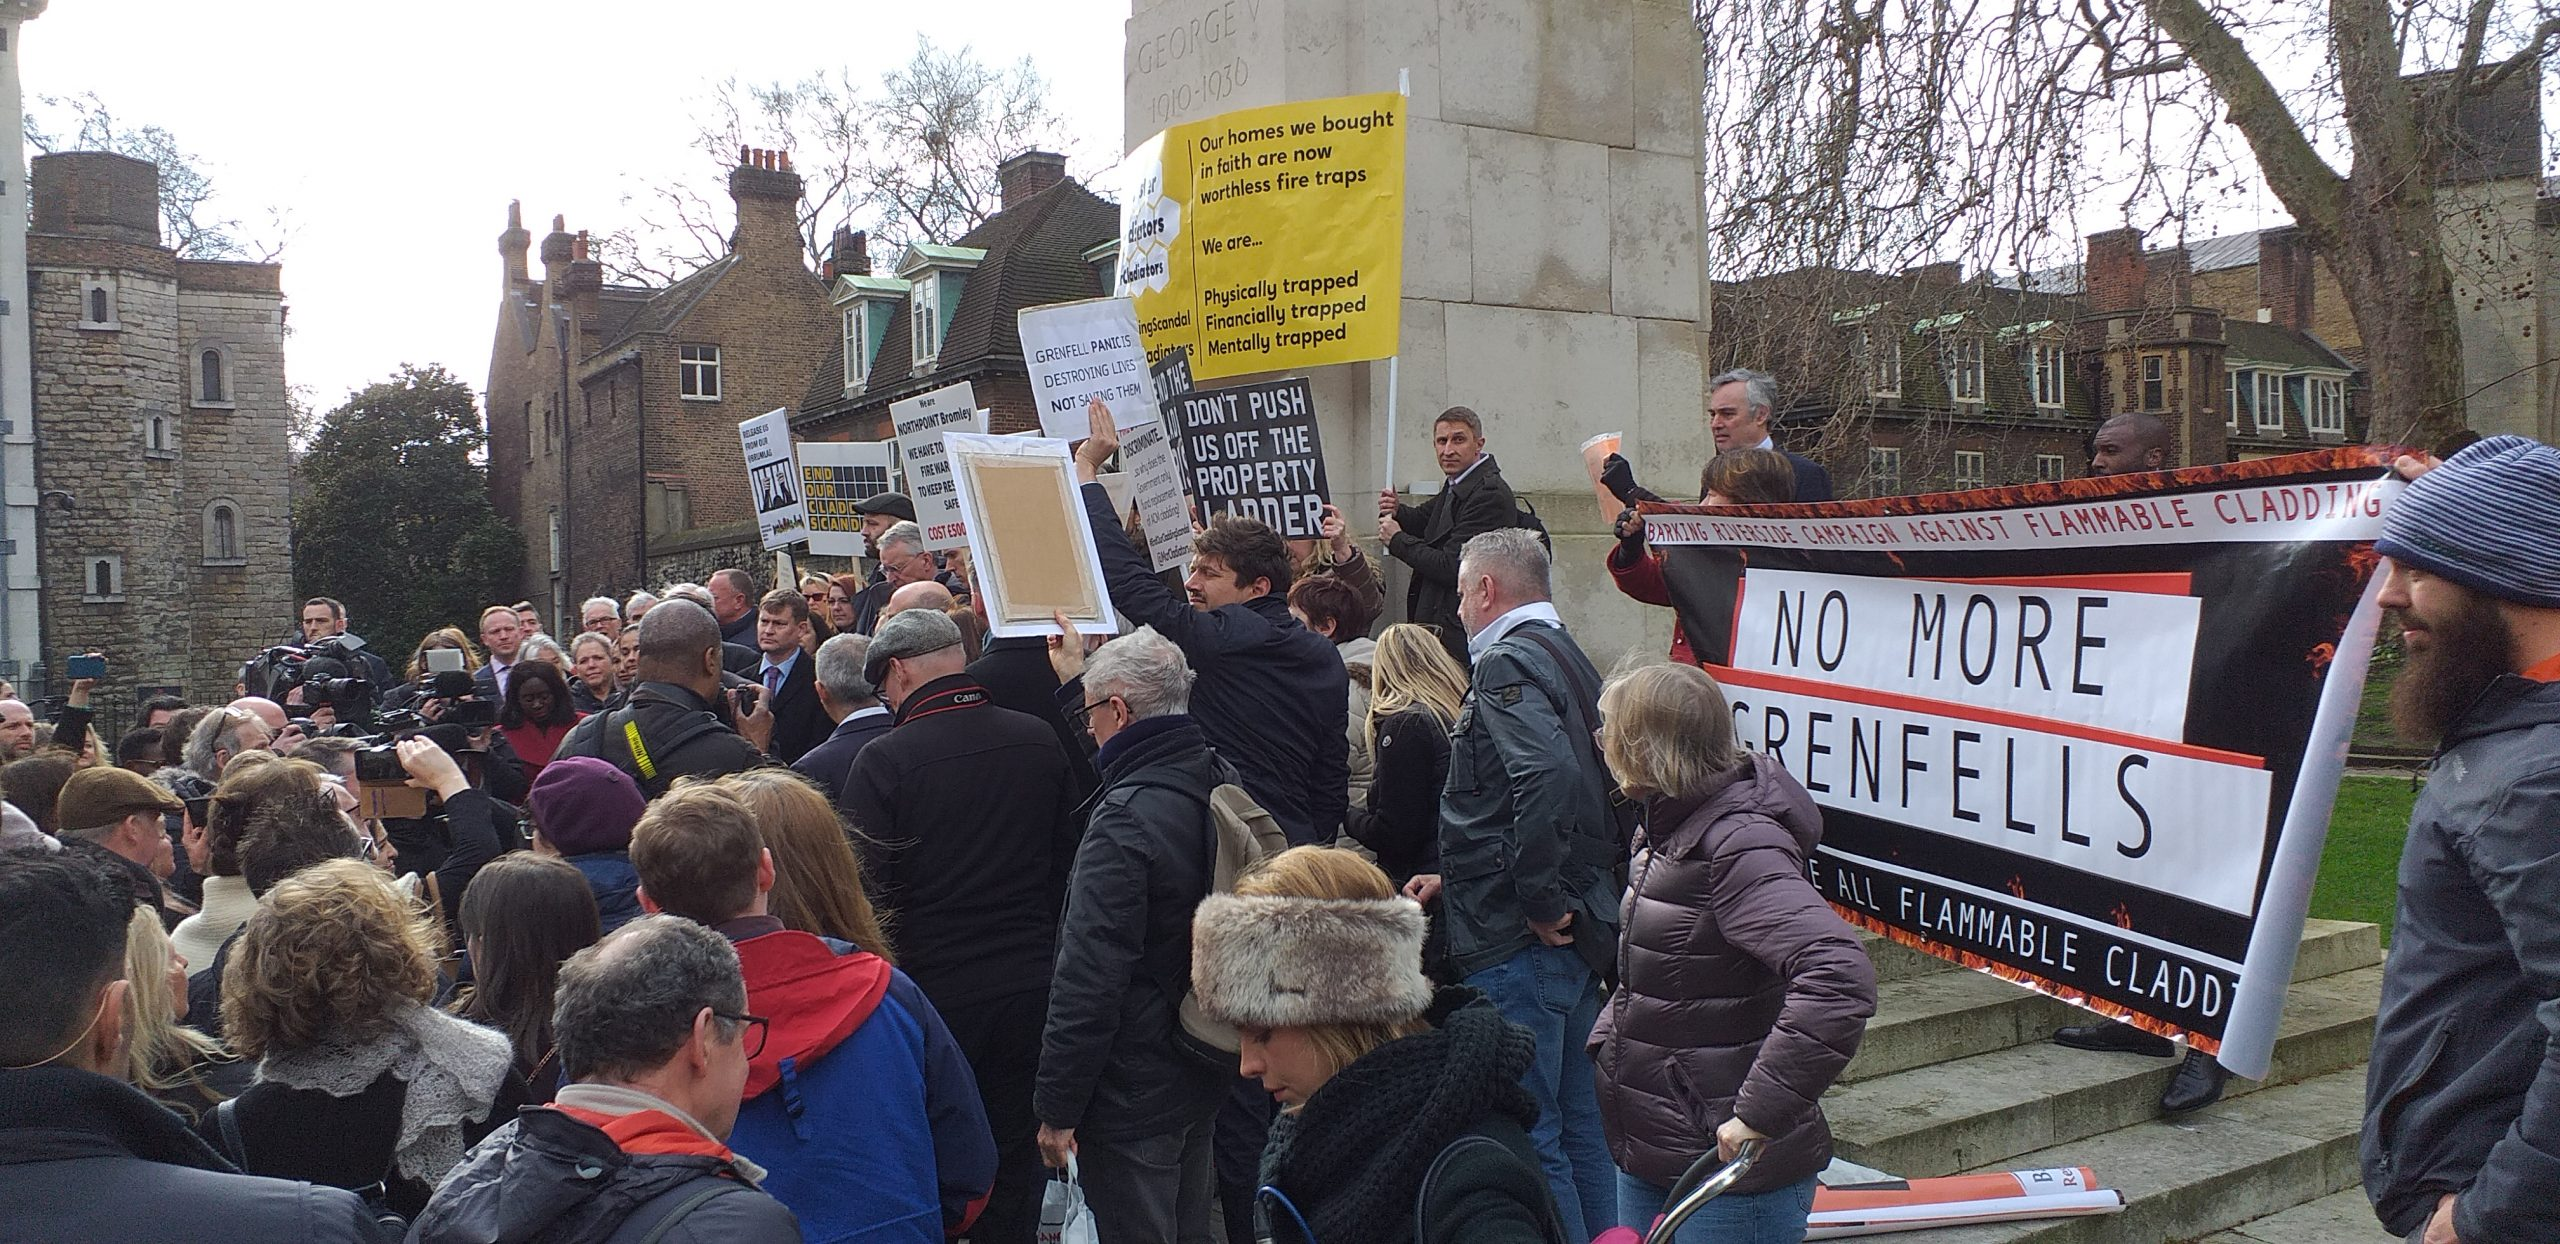 London and Manchester residents associations protest against flammable cladding outside parliament